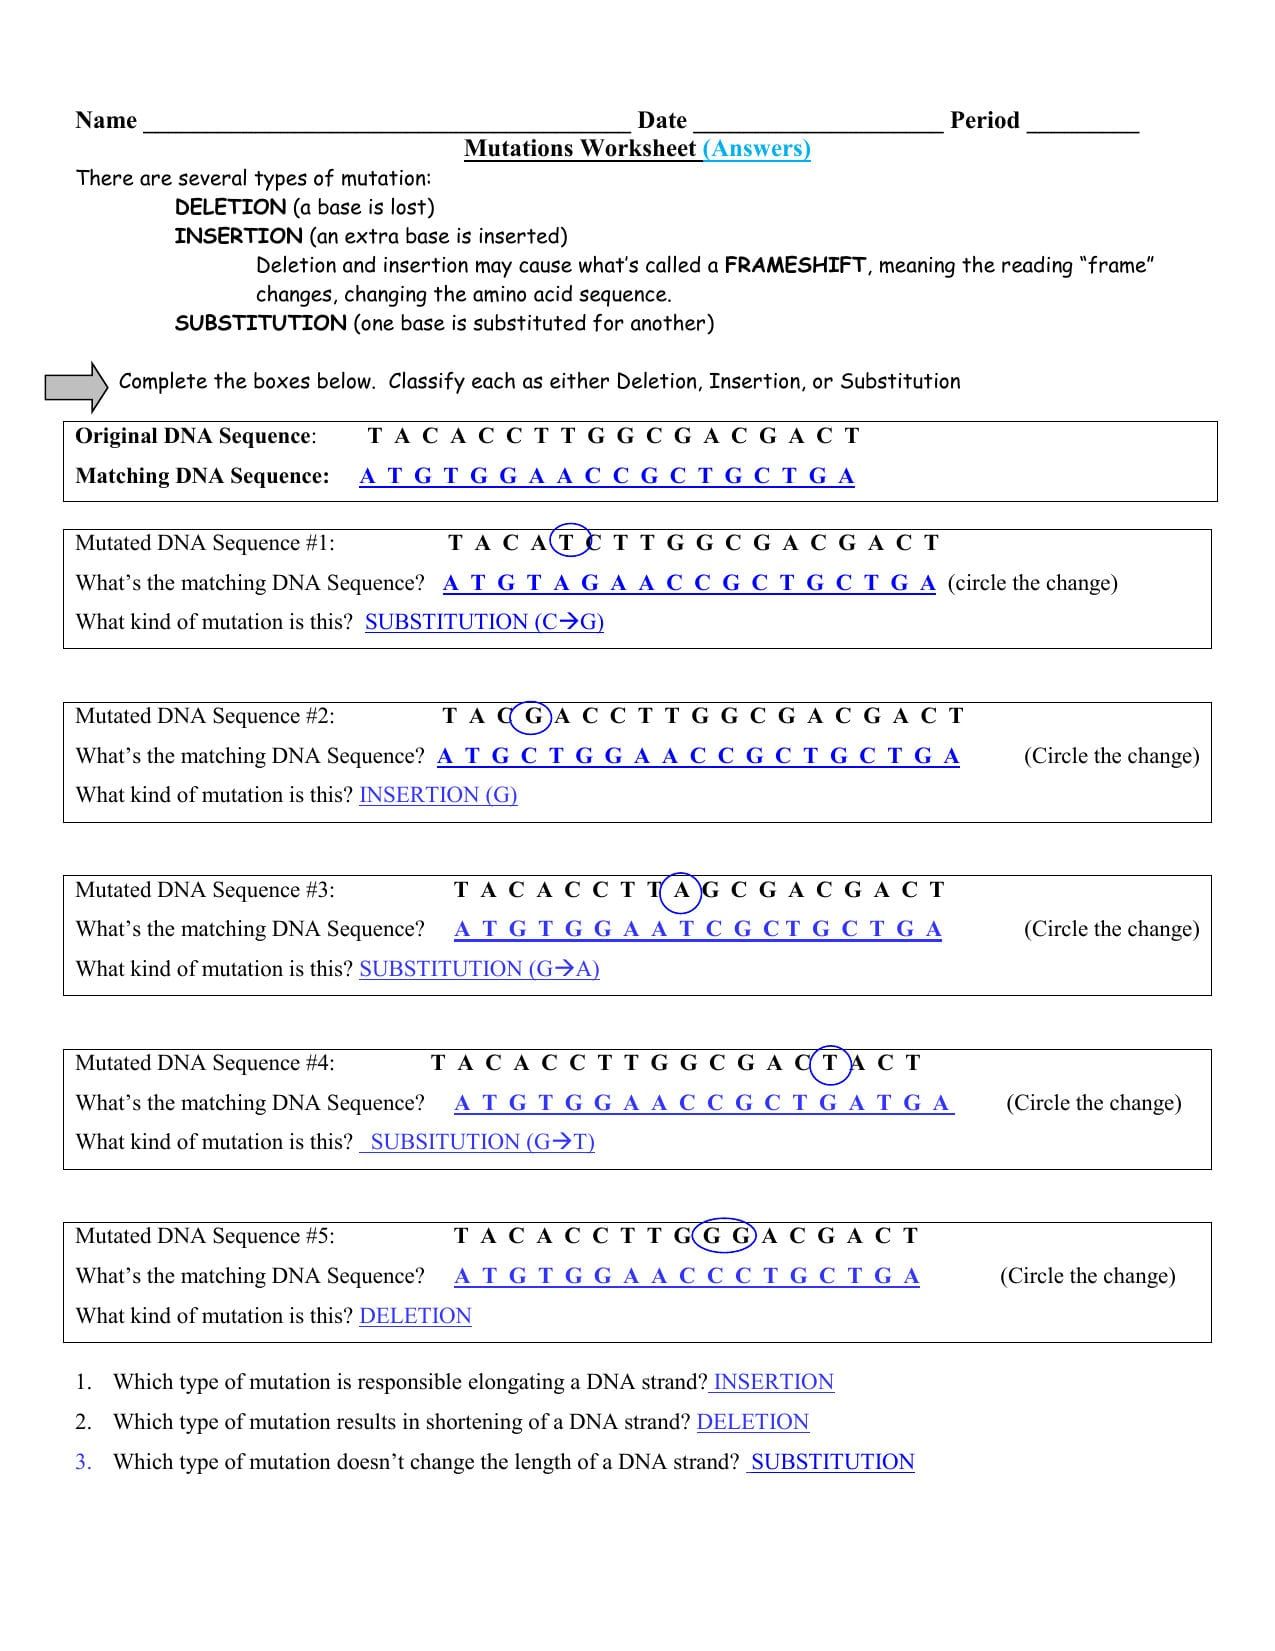 Mutation Answers  Guertinscience For Sickle Cell Anemia Worksheet Answers